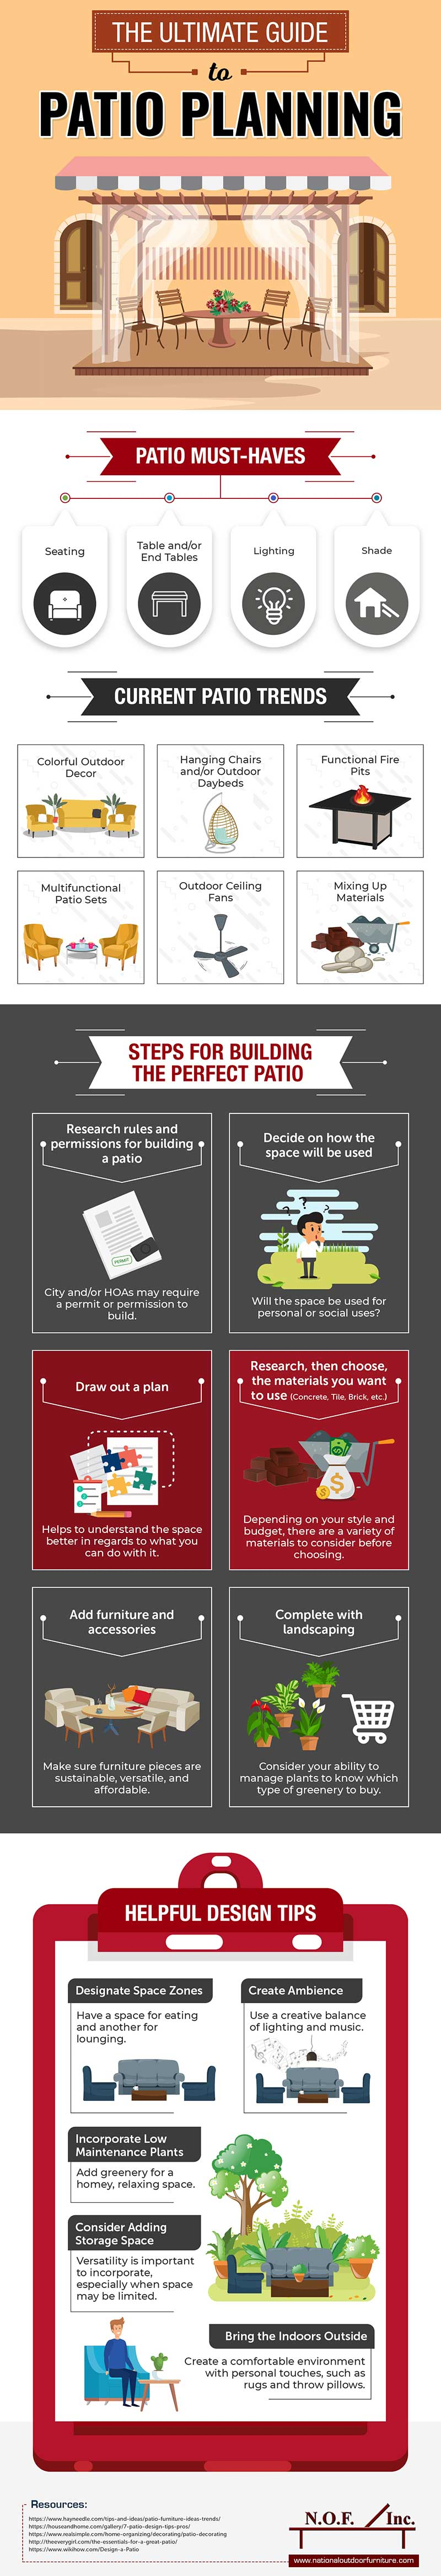 The Ultimate Guide to Patio Planning